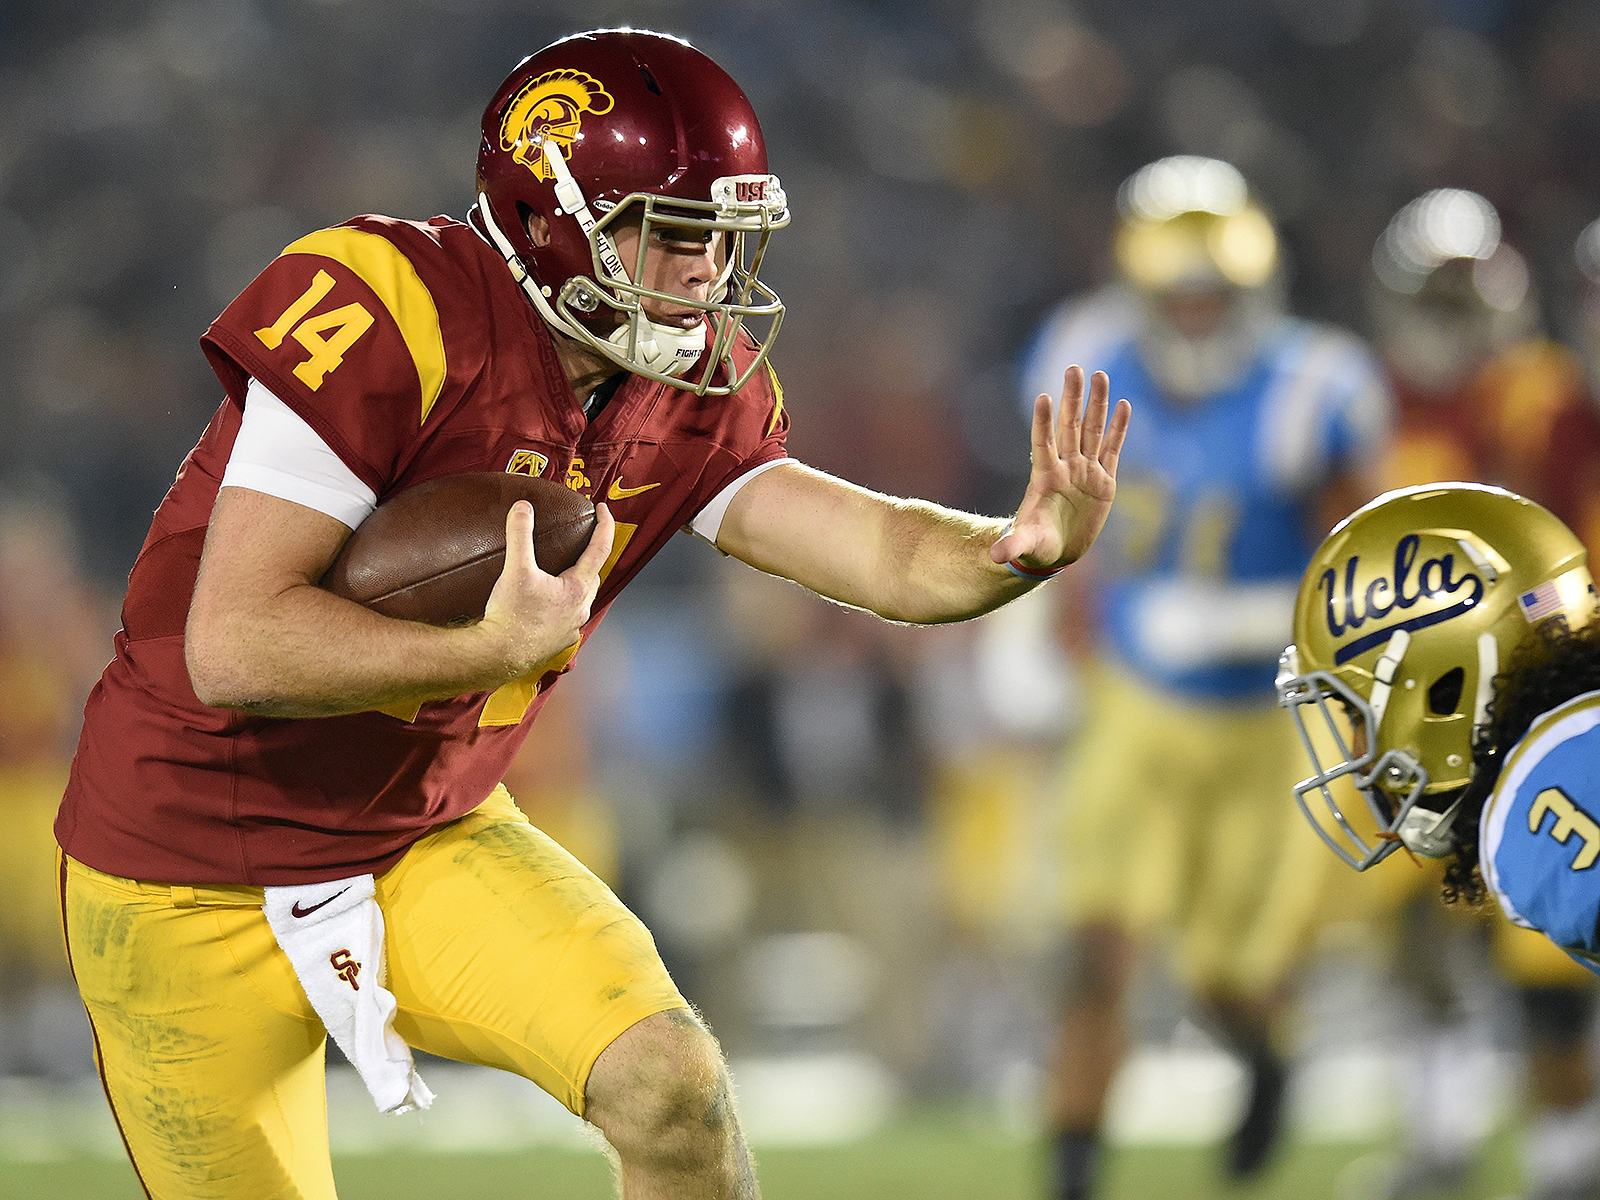 After an impressive close to a season he started on the bench, Darnold is on this year's Heisman Trophy short list.